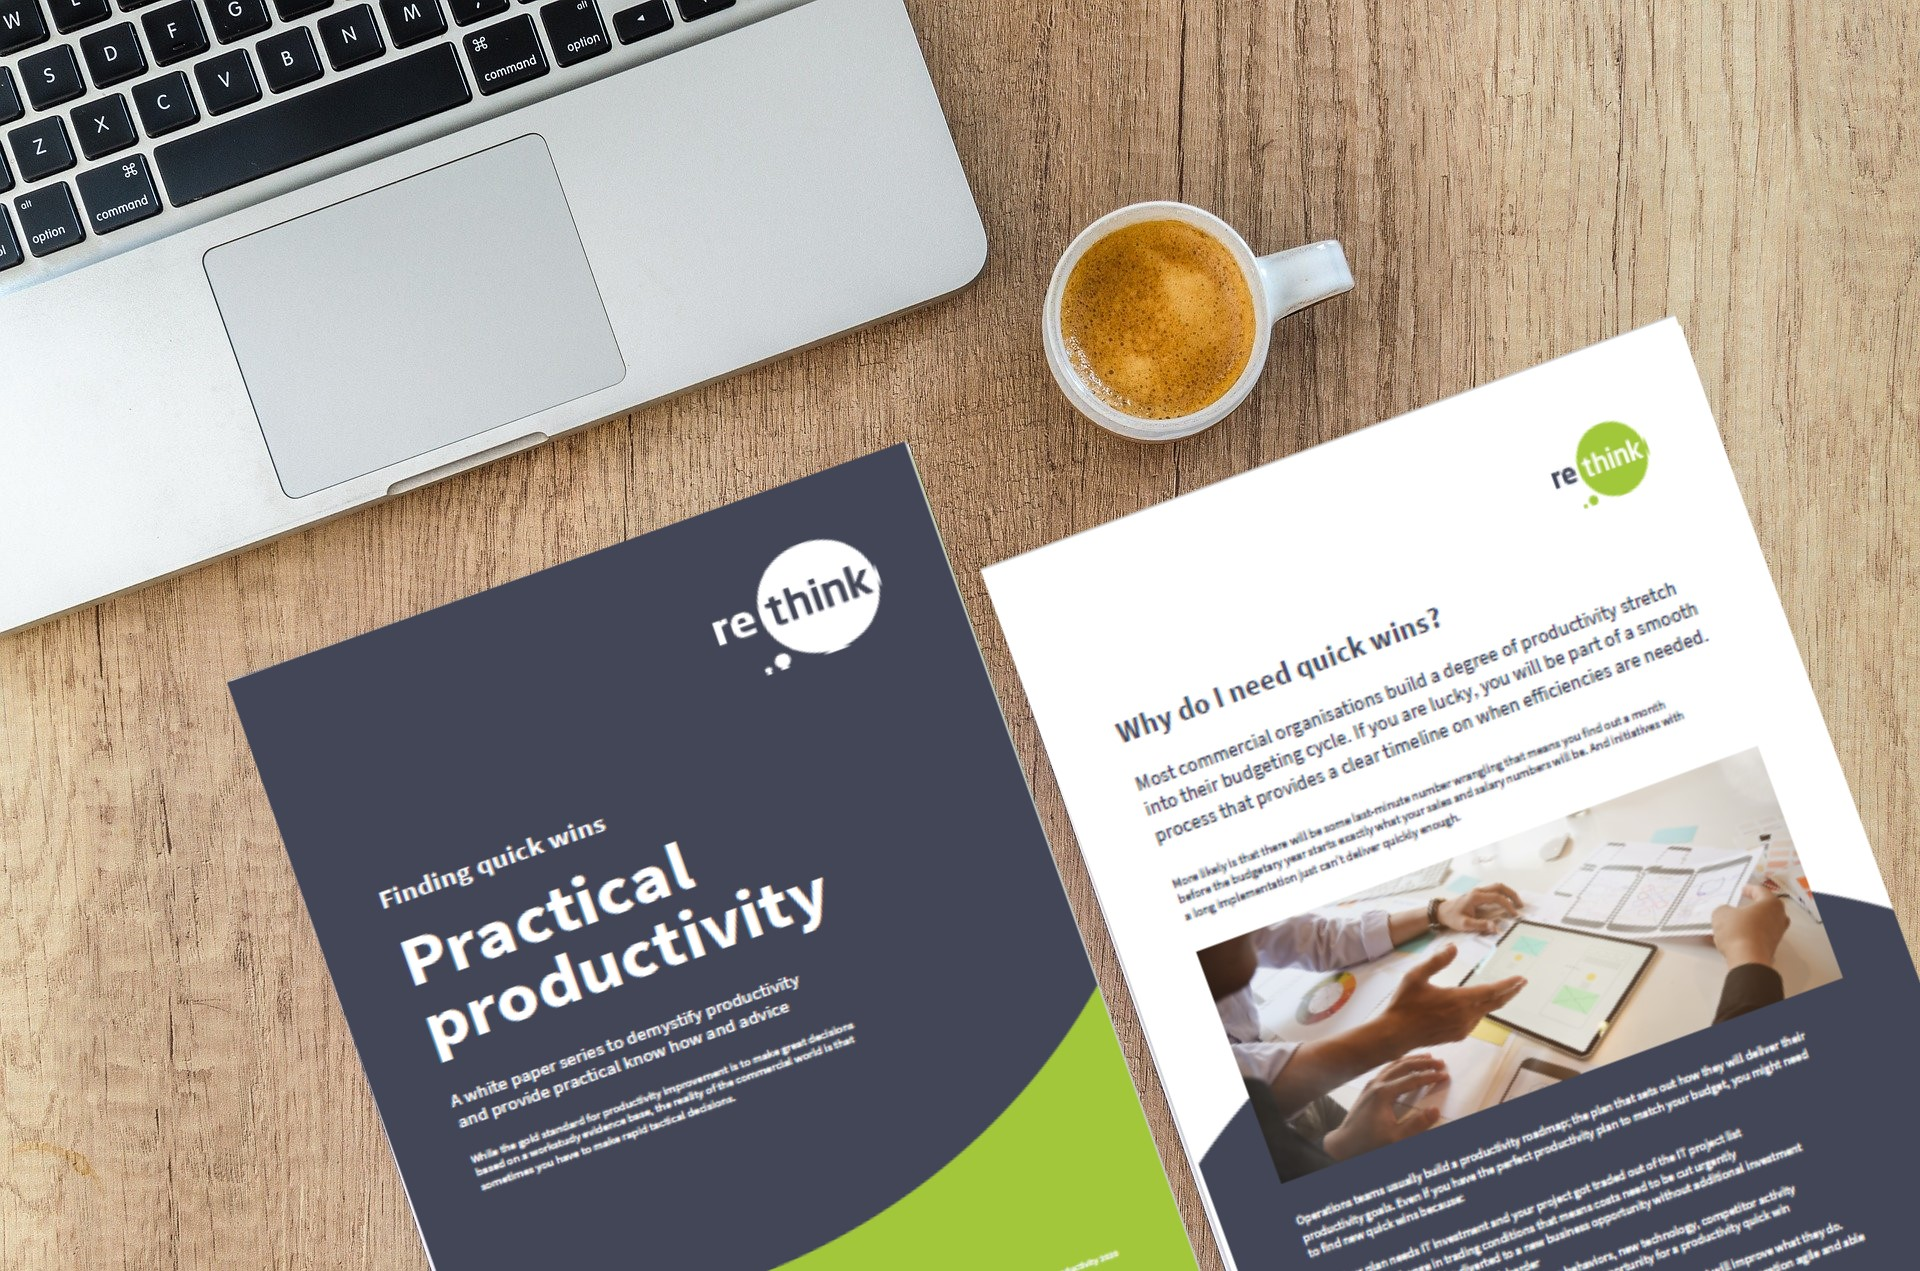 Practical Productivity - Quick Wins